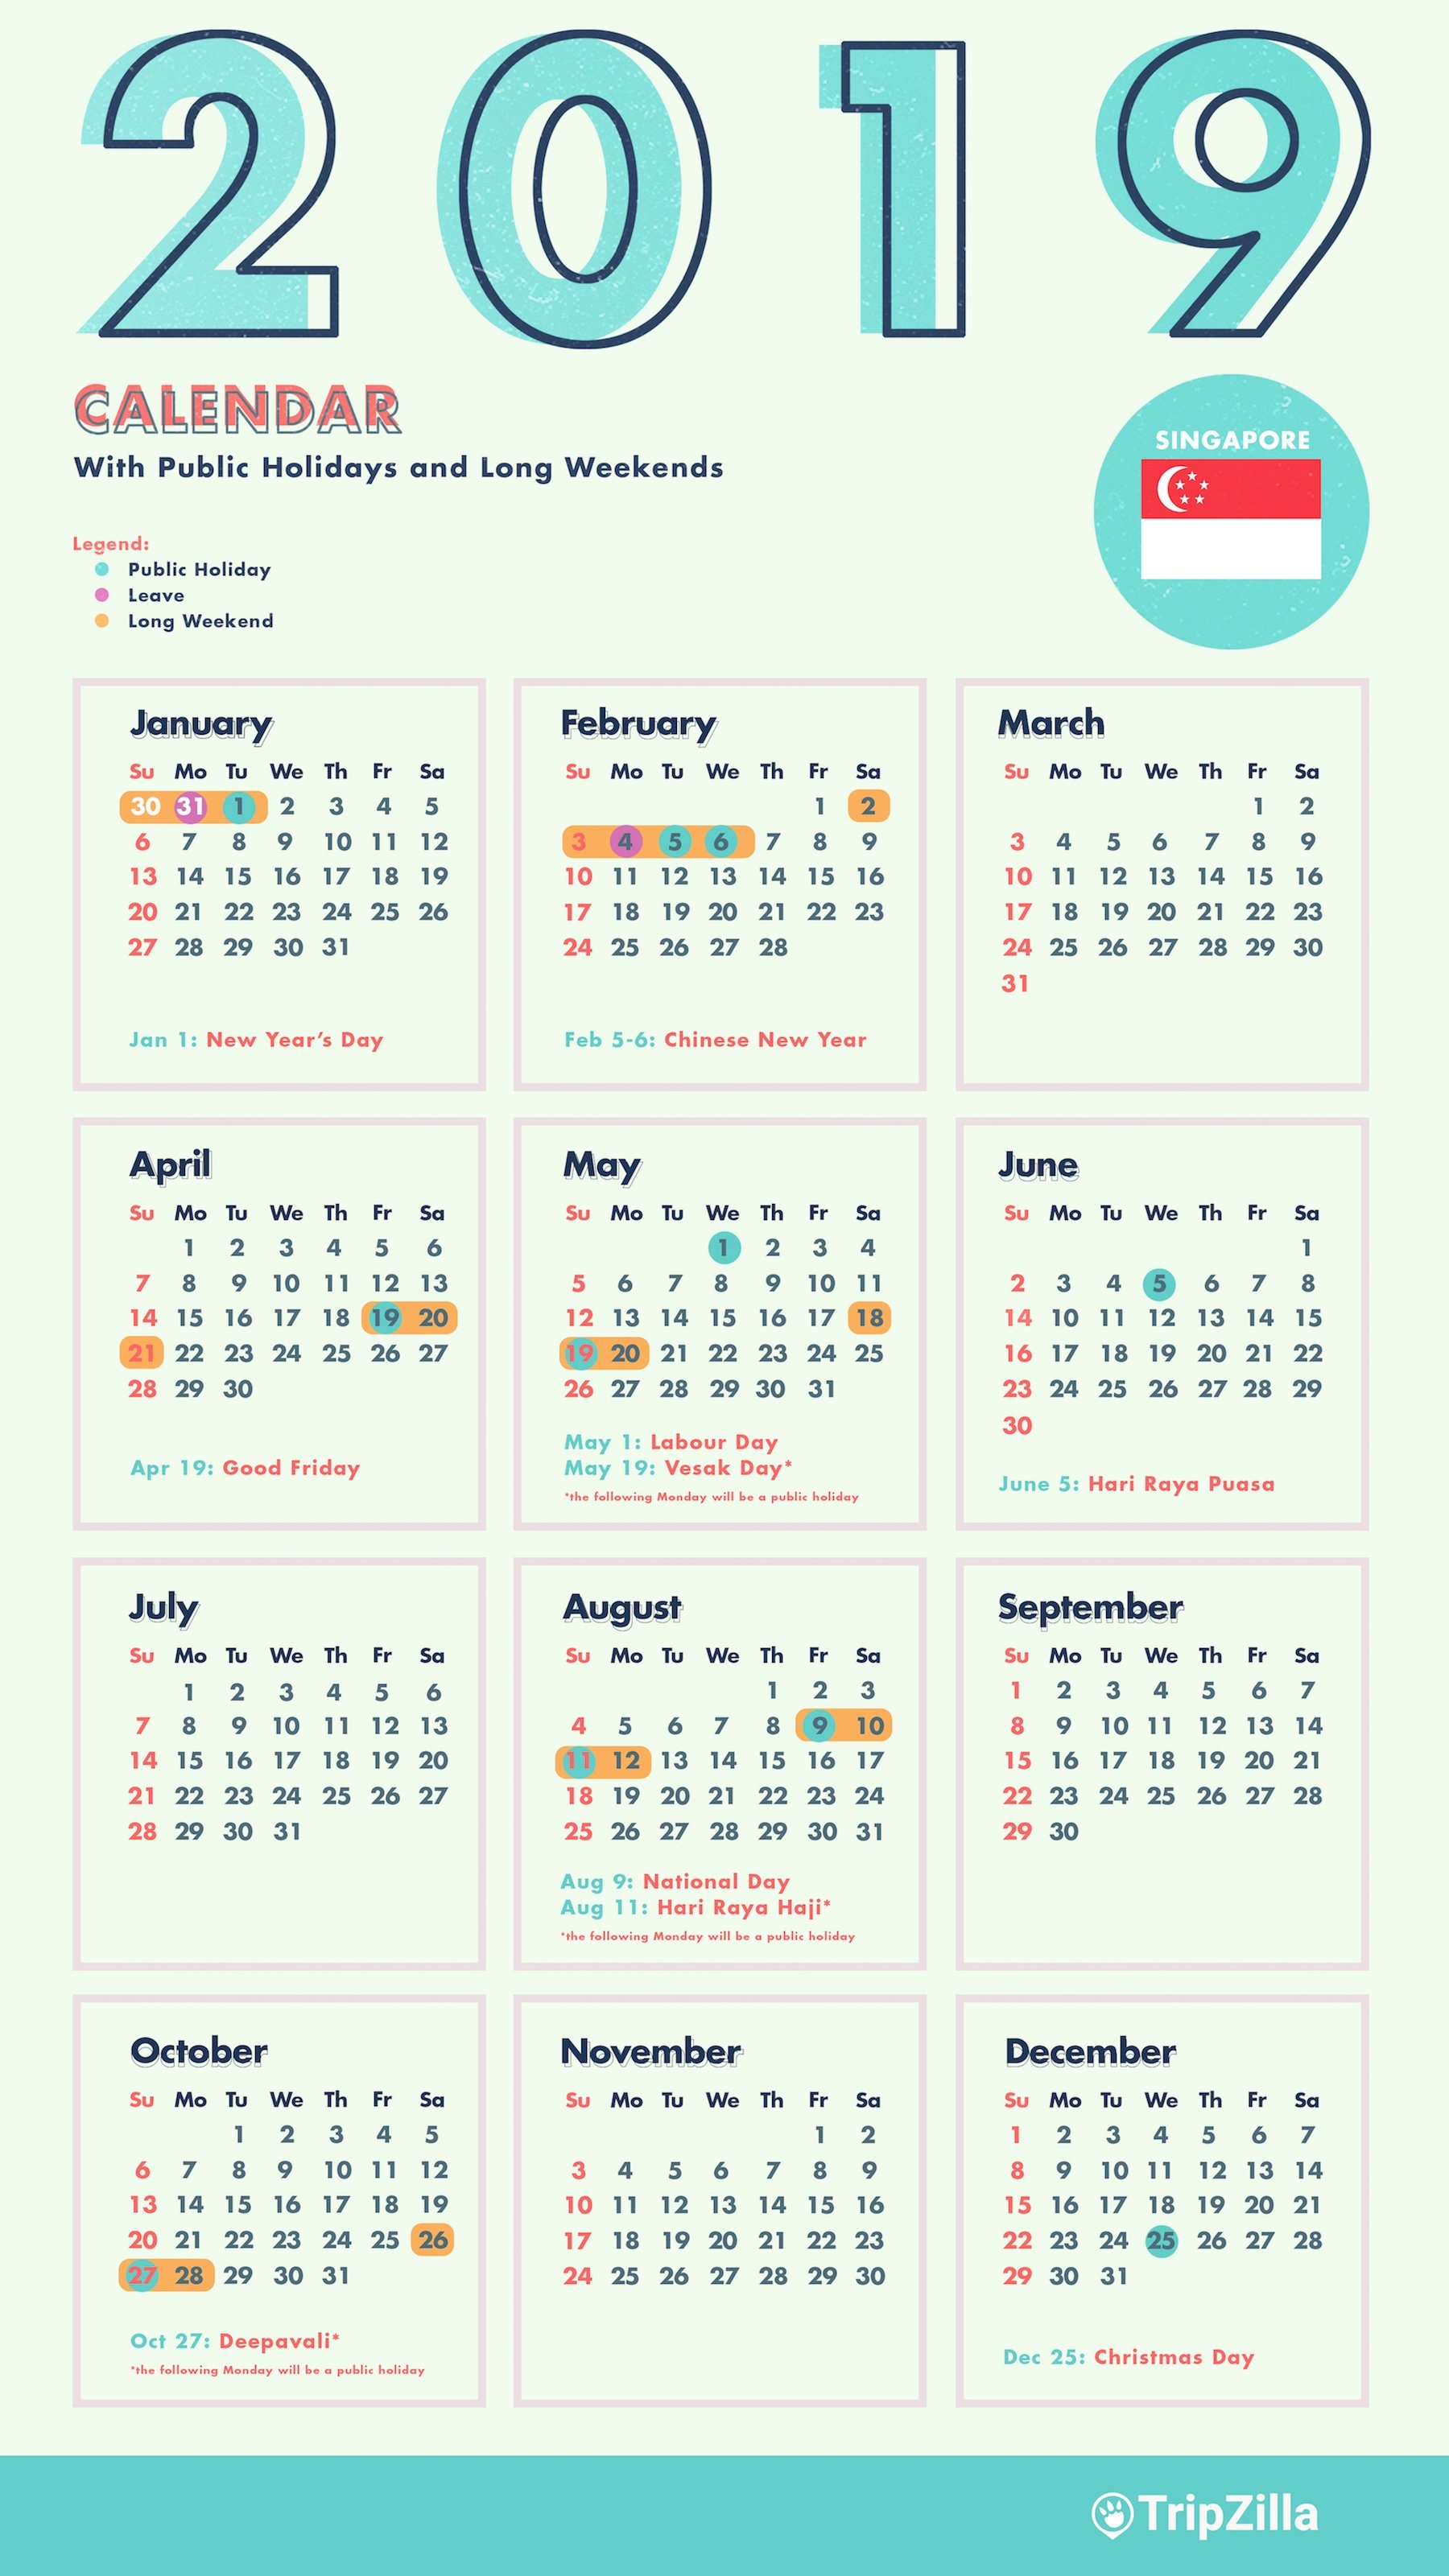 6 Long Weekends In Singapore In 2019 (Bonus Calendar & Cheatsheet) Calendar 2019 Raya